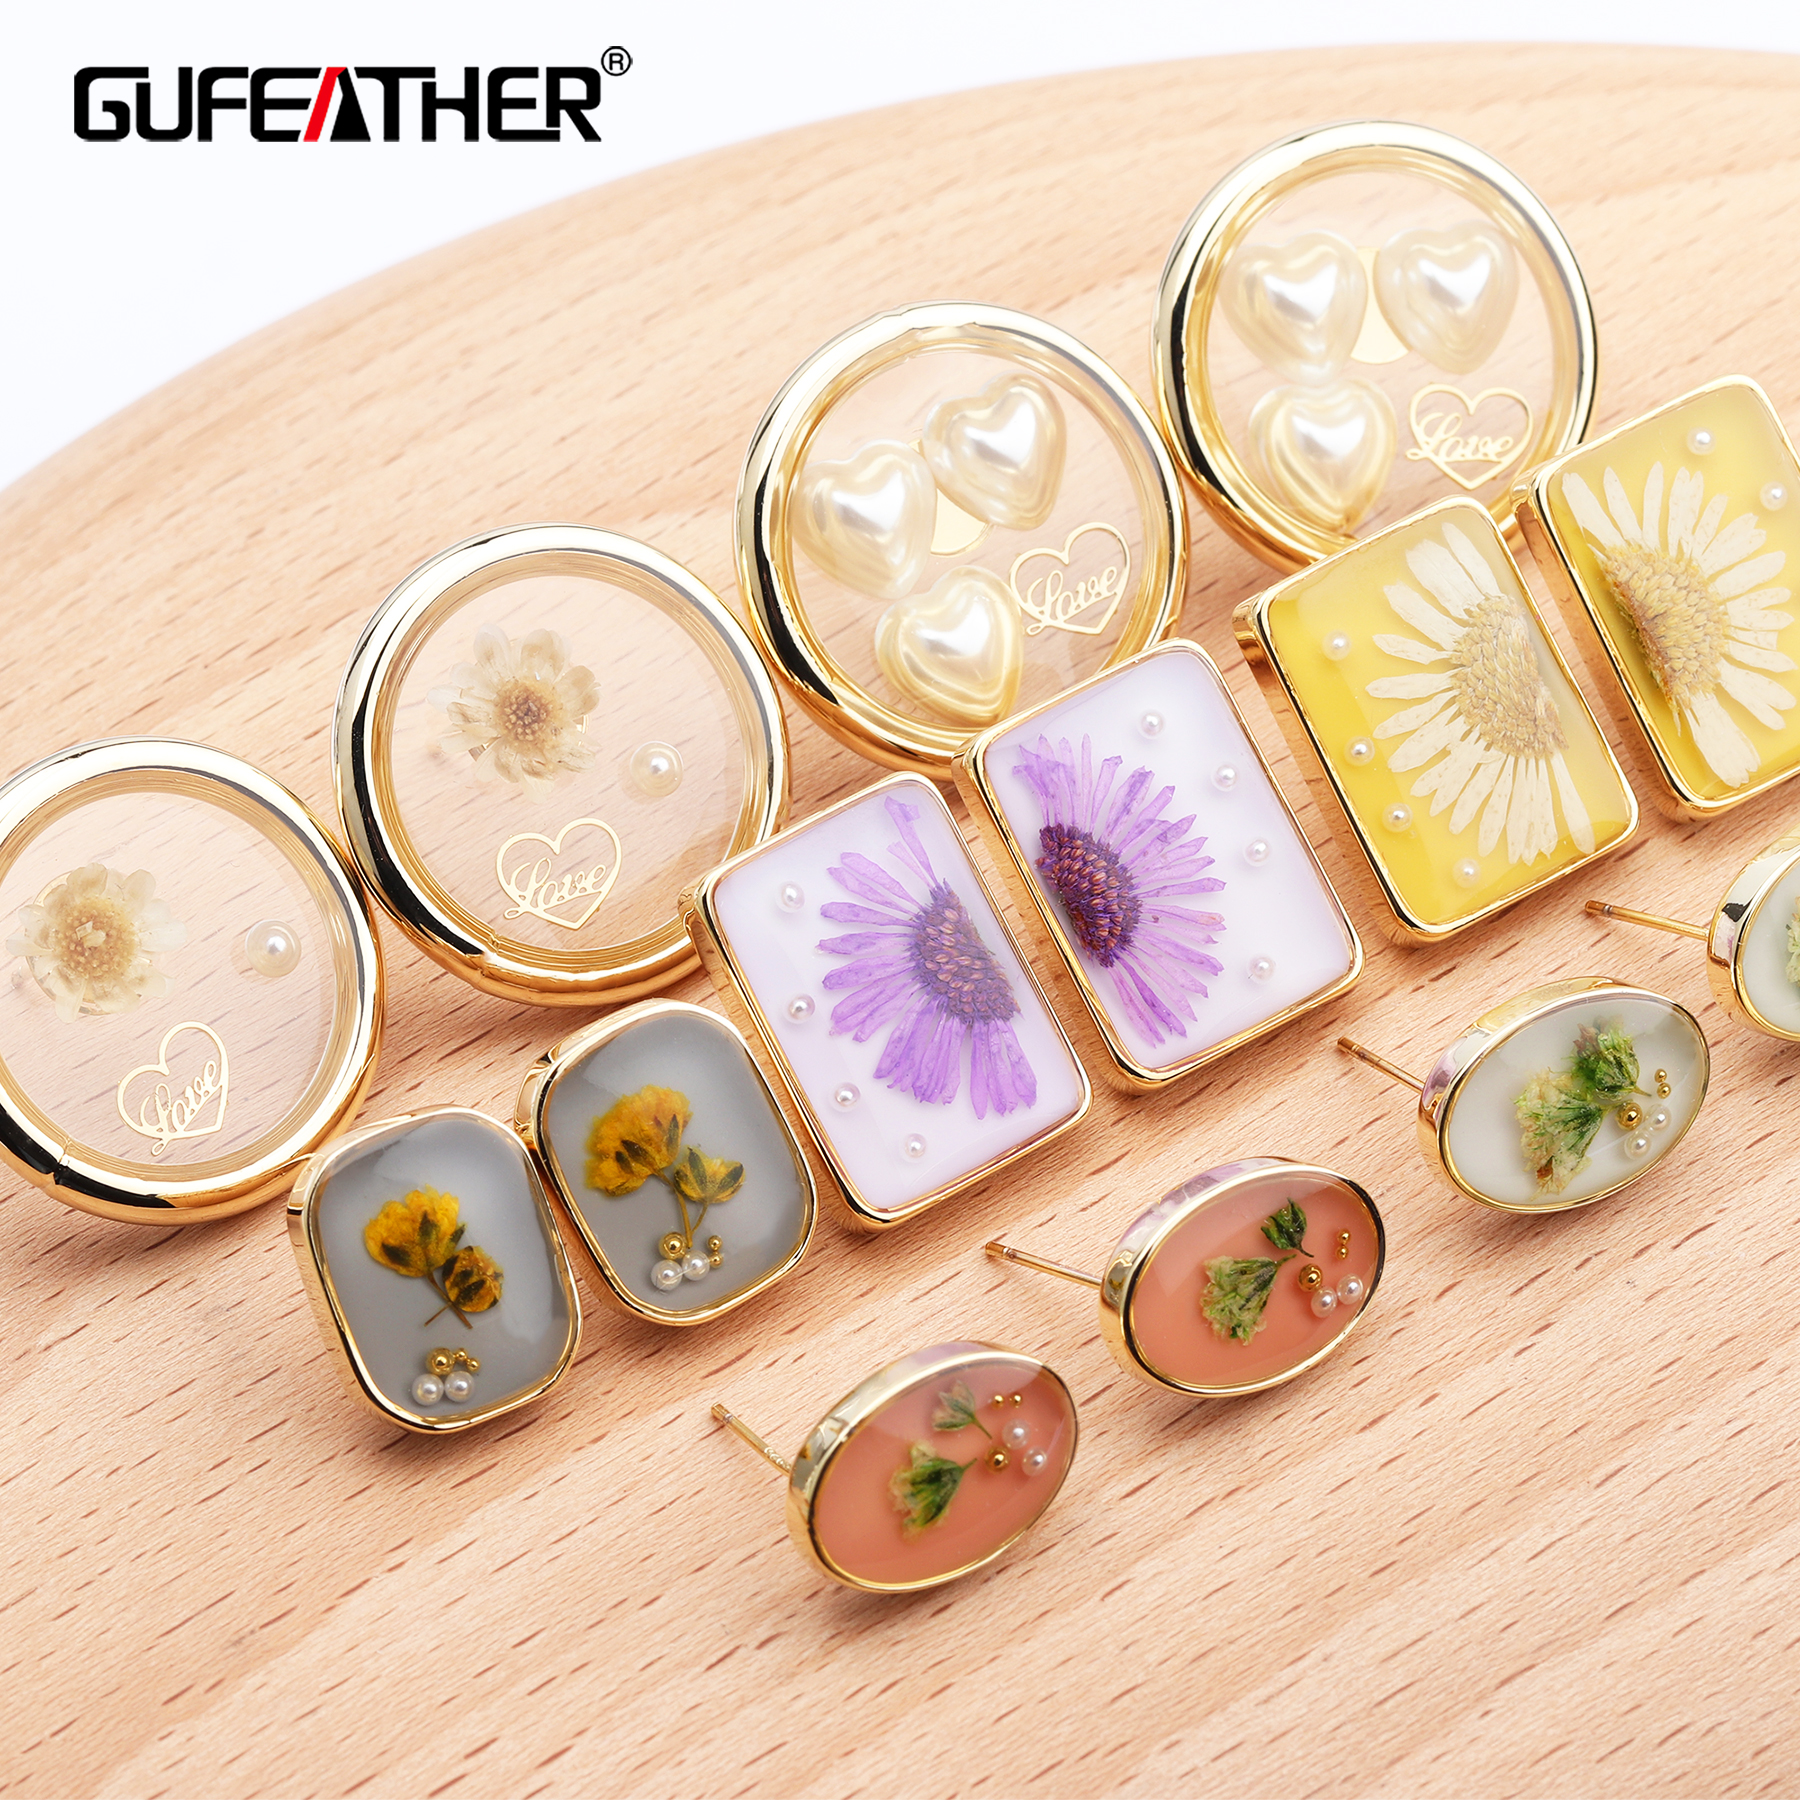 GUFEATHER M632,jewelry Accessories,925 Silver Needle,resin,dried Flower,jump Ring,diy Earring Pendant,jewelry Making,6pcs/lot